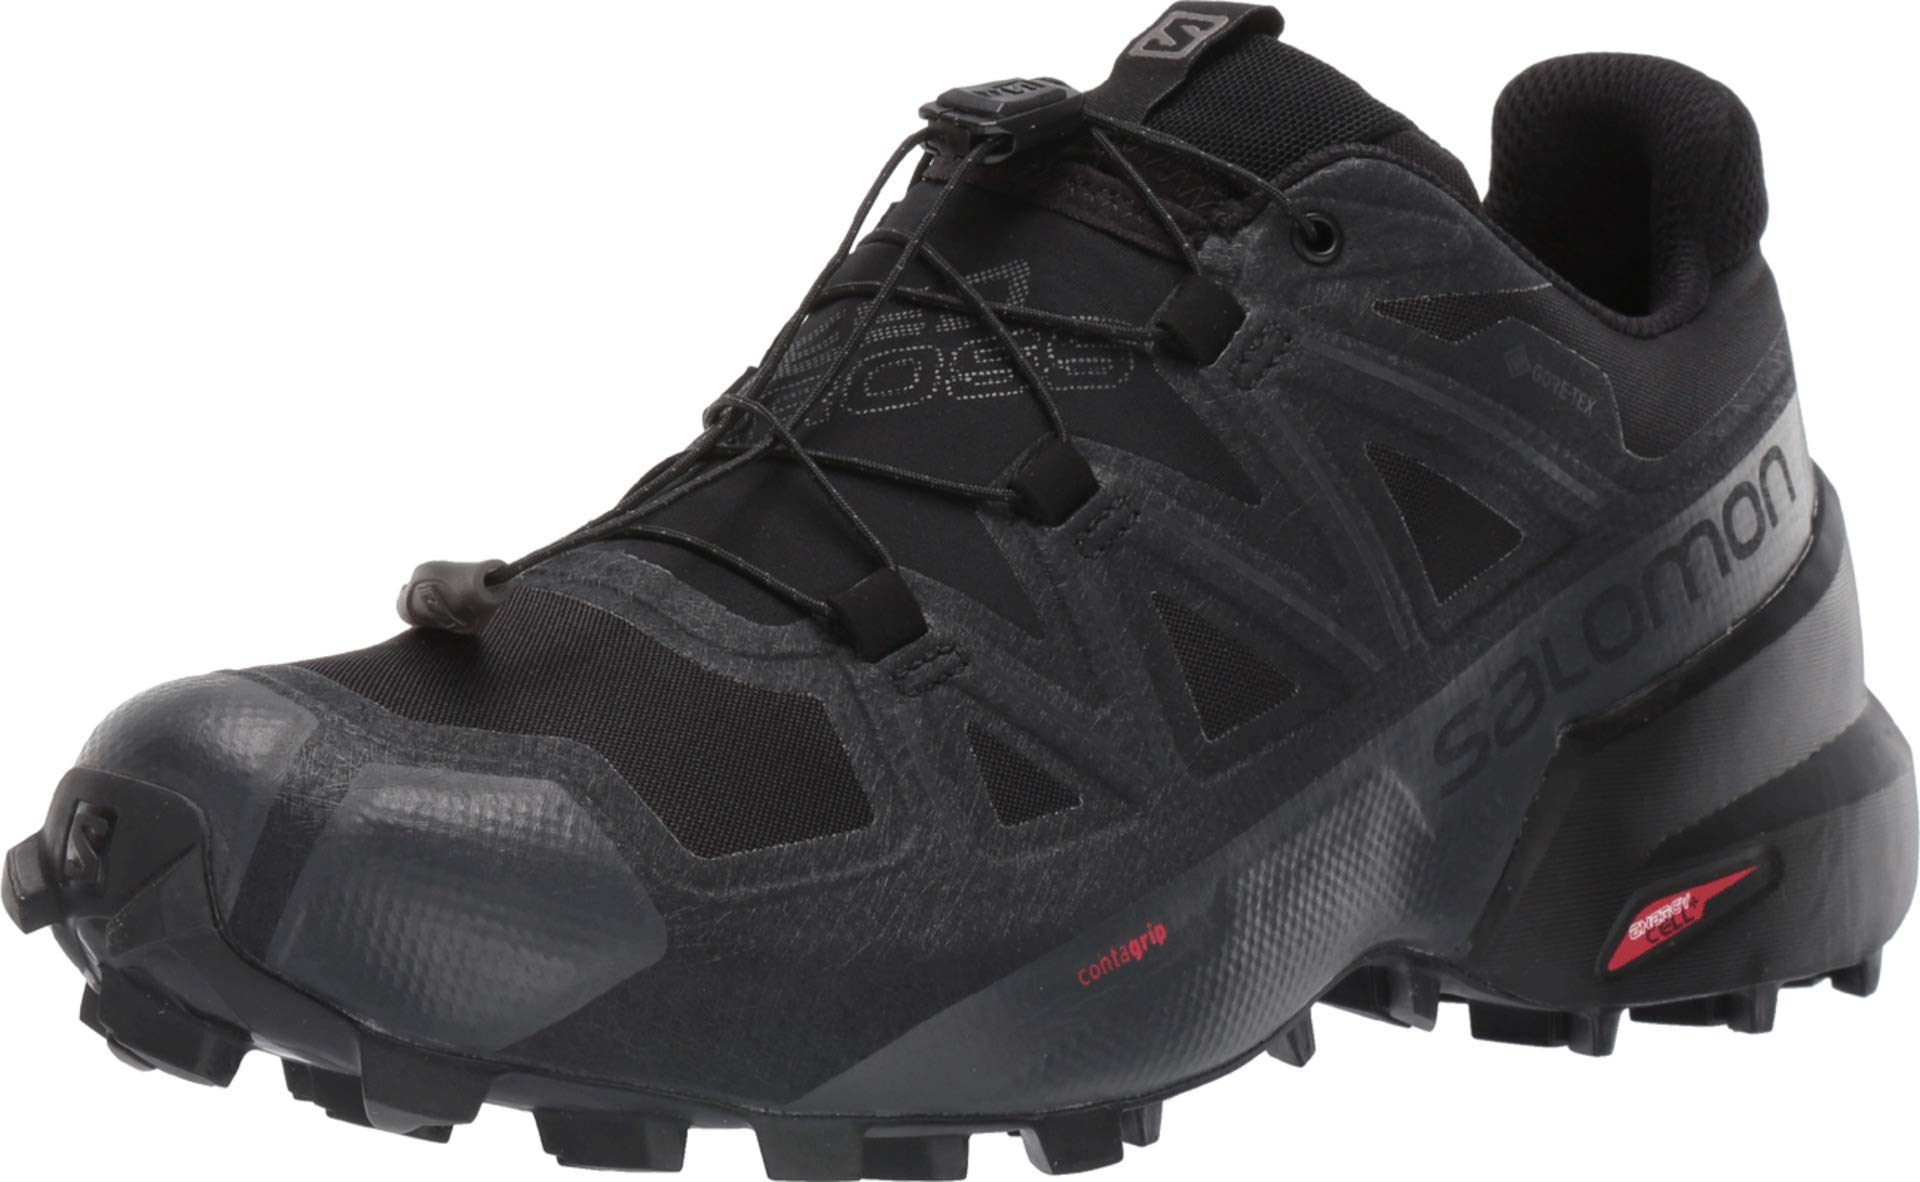 Salomon Women's Speedcross 5 GTX Trail Running Shoes, Black/Black/PHANTOM, 12 by SALOMON